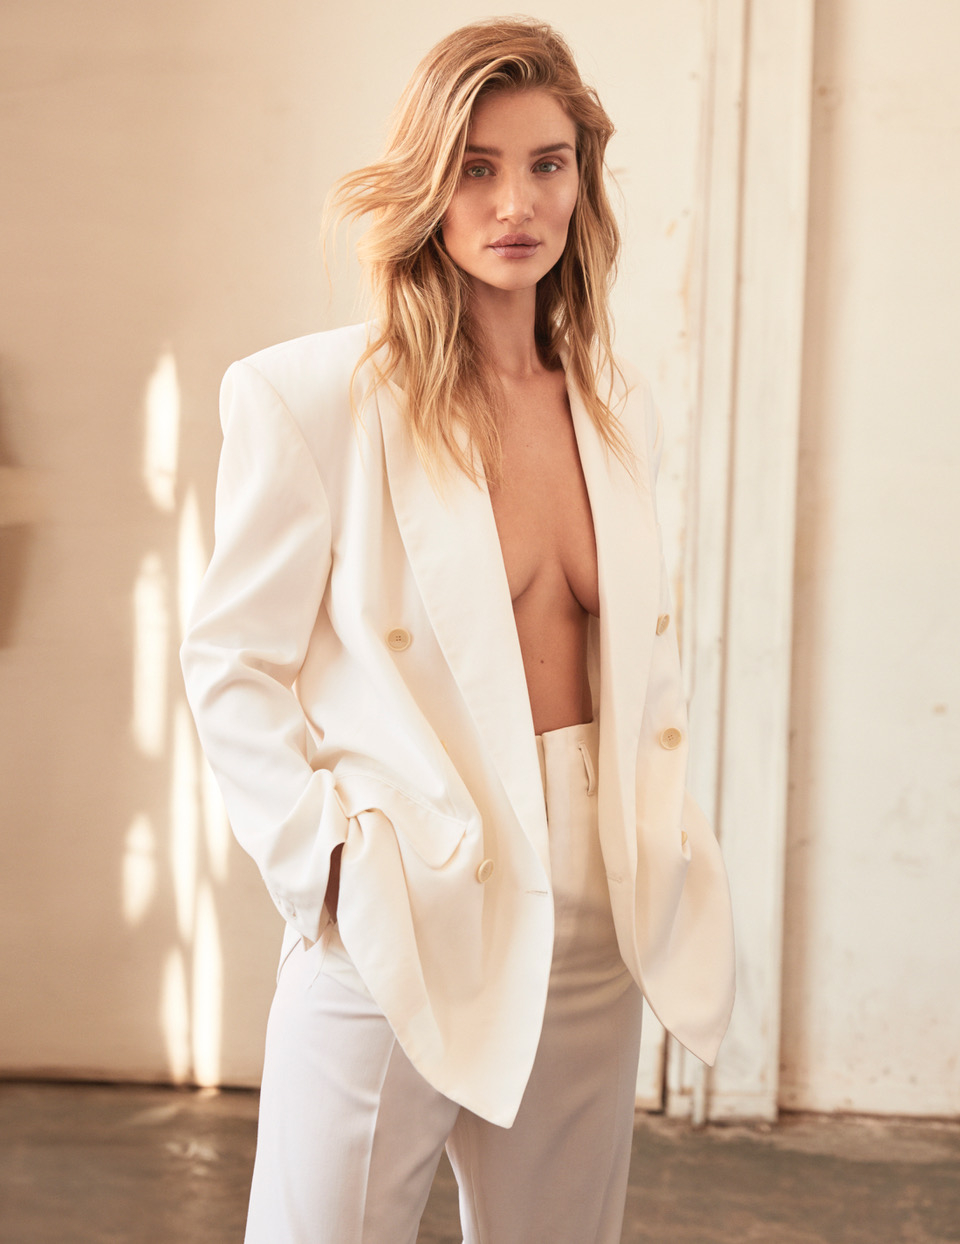 ROSIE_HUNTINGTON_WHITLEY_SHOT_04_029_2514DR_B_ADOBERGB